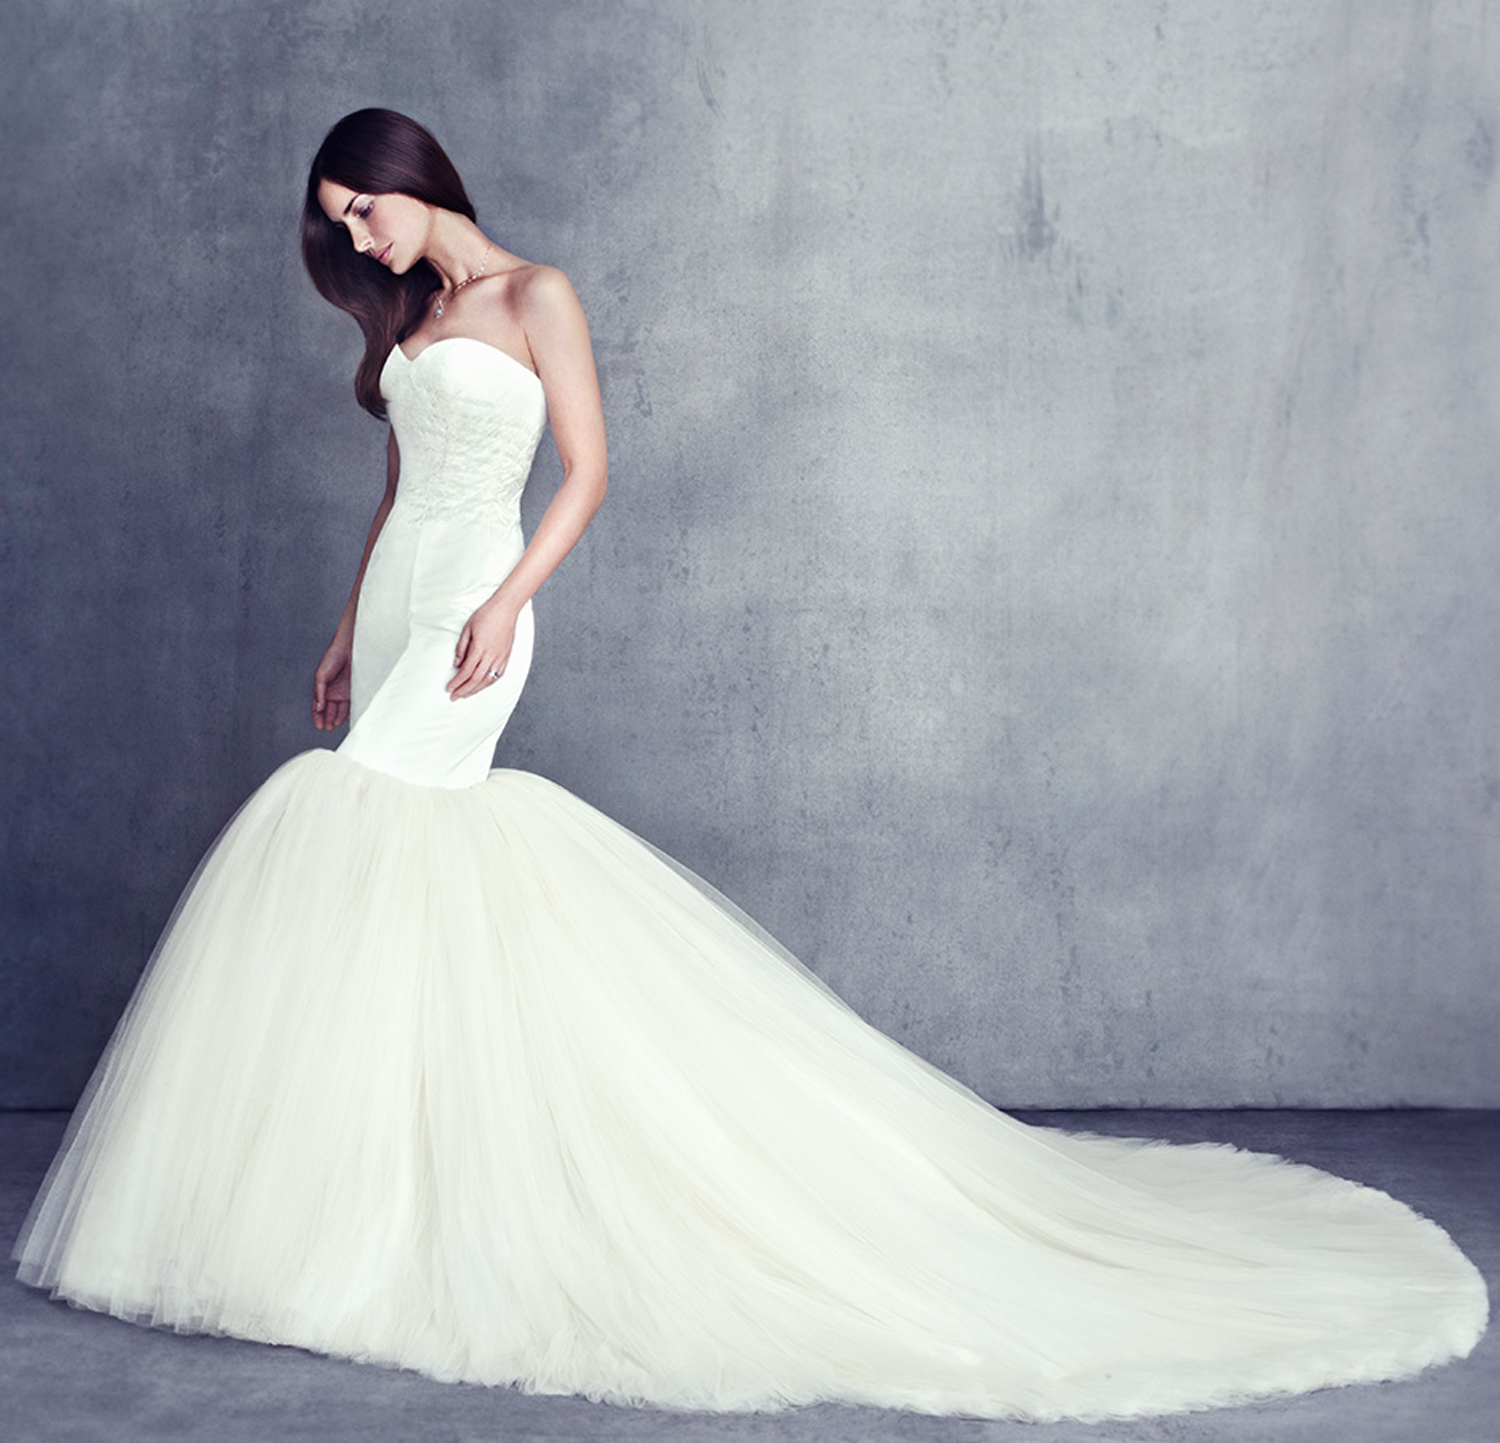 Contemporary Vow Bridal I Found The Gown Sketch - All Wedding ...